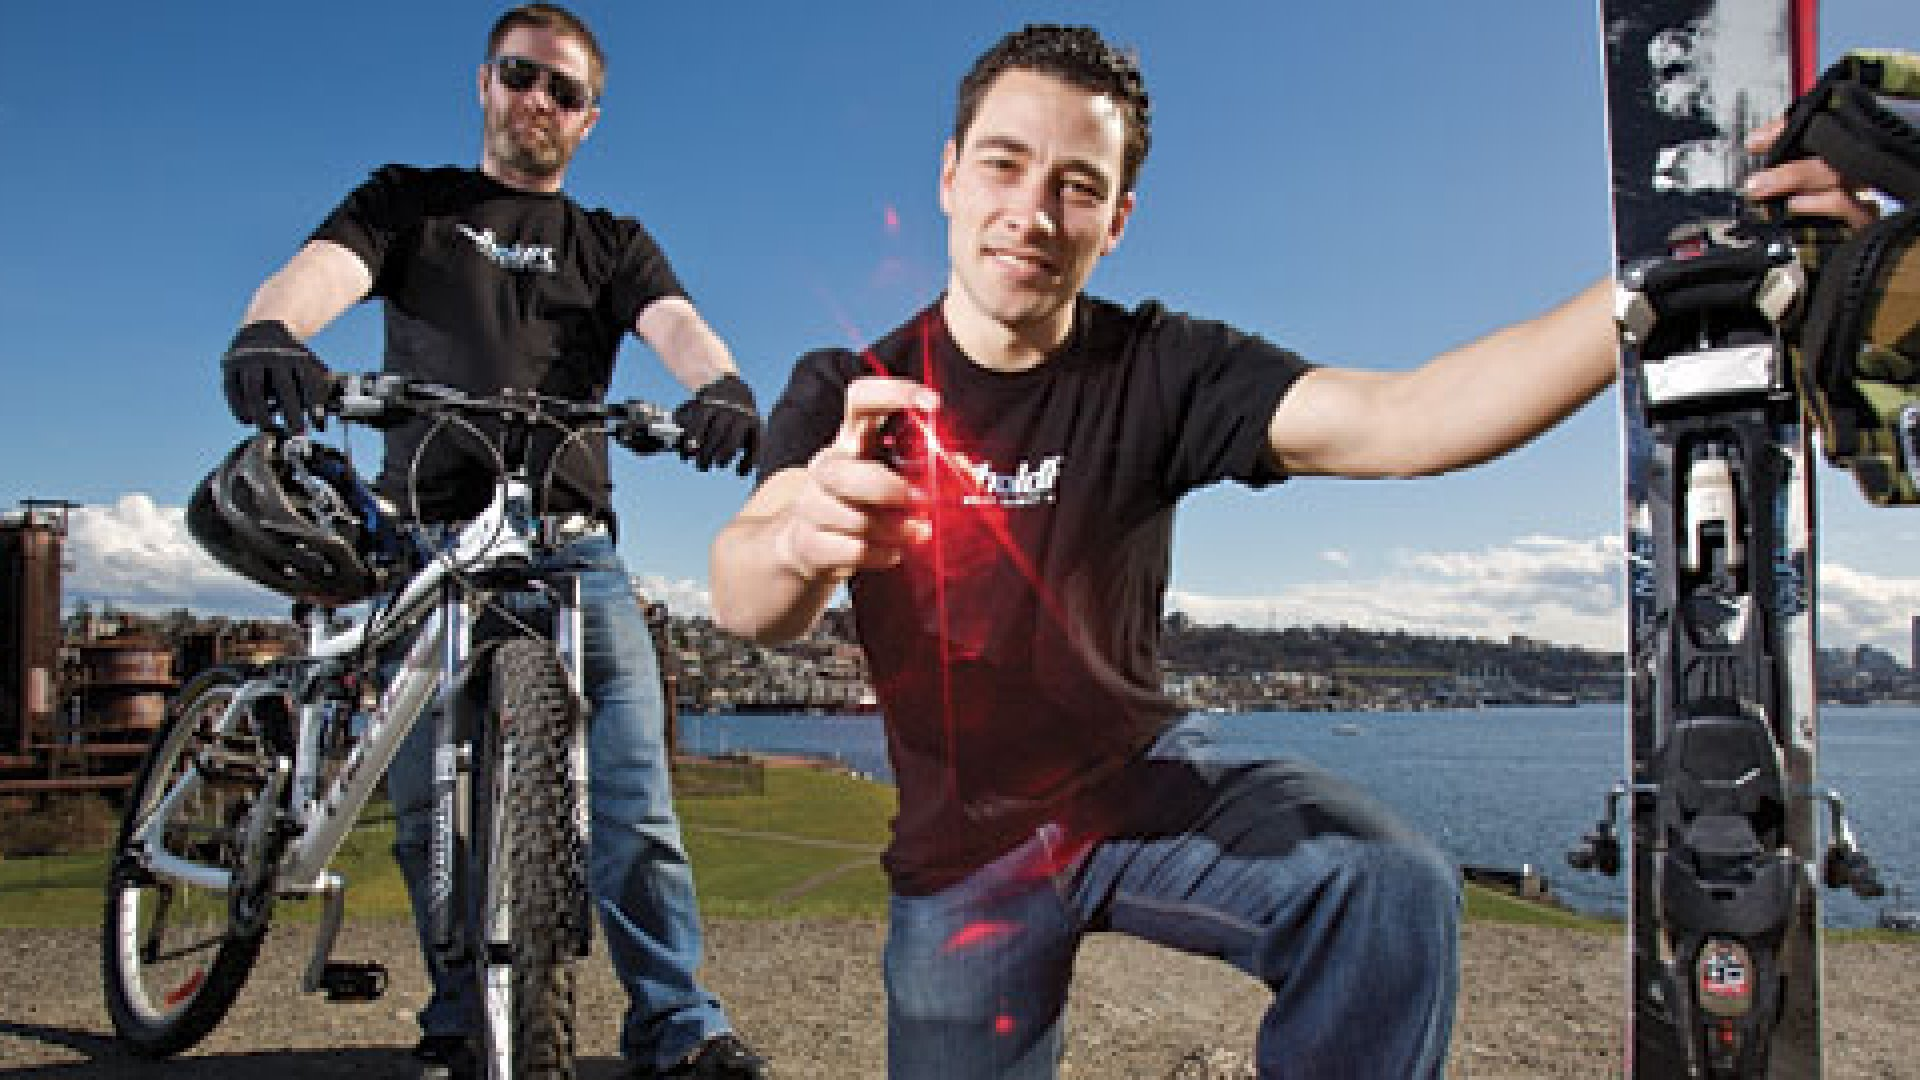 Jason Green (left) and Marc Barros (right) founded Twenty20 when they were students at the University of Washington.